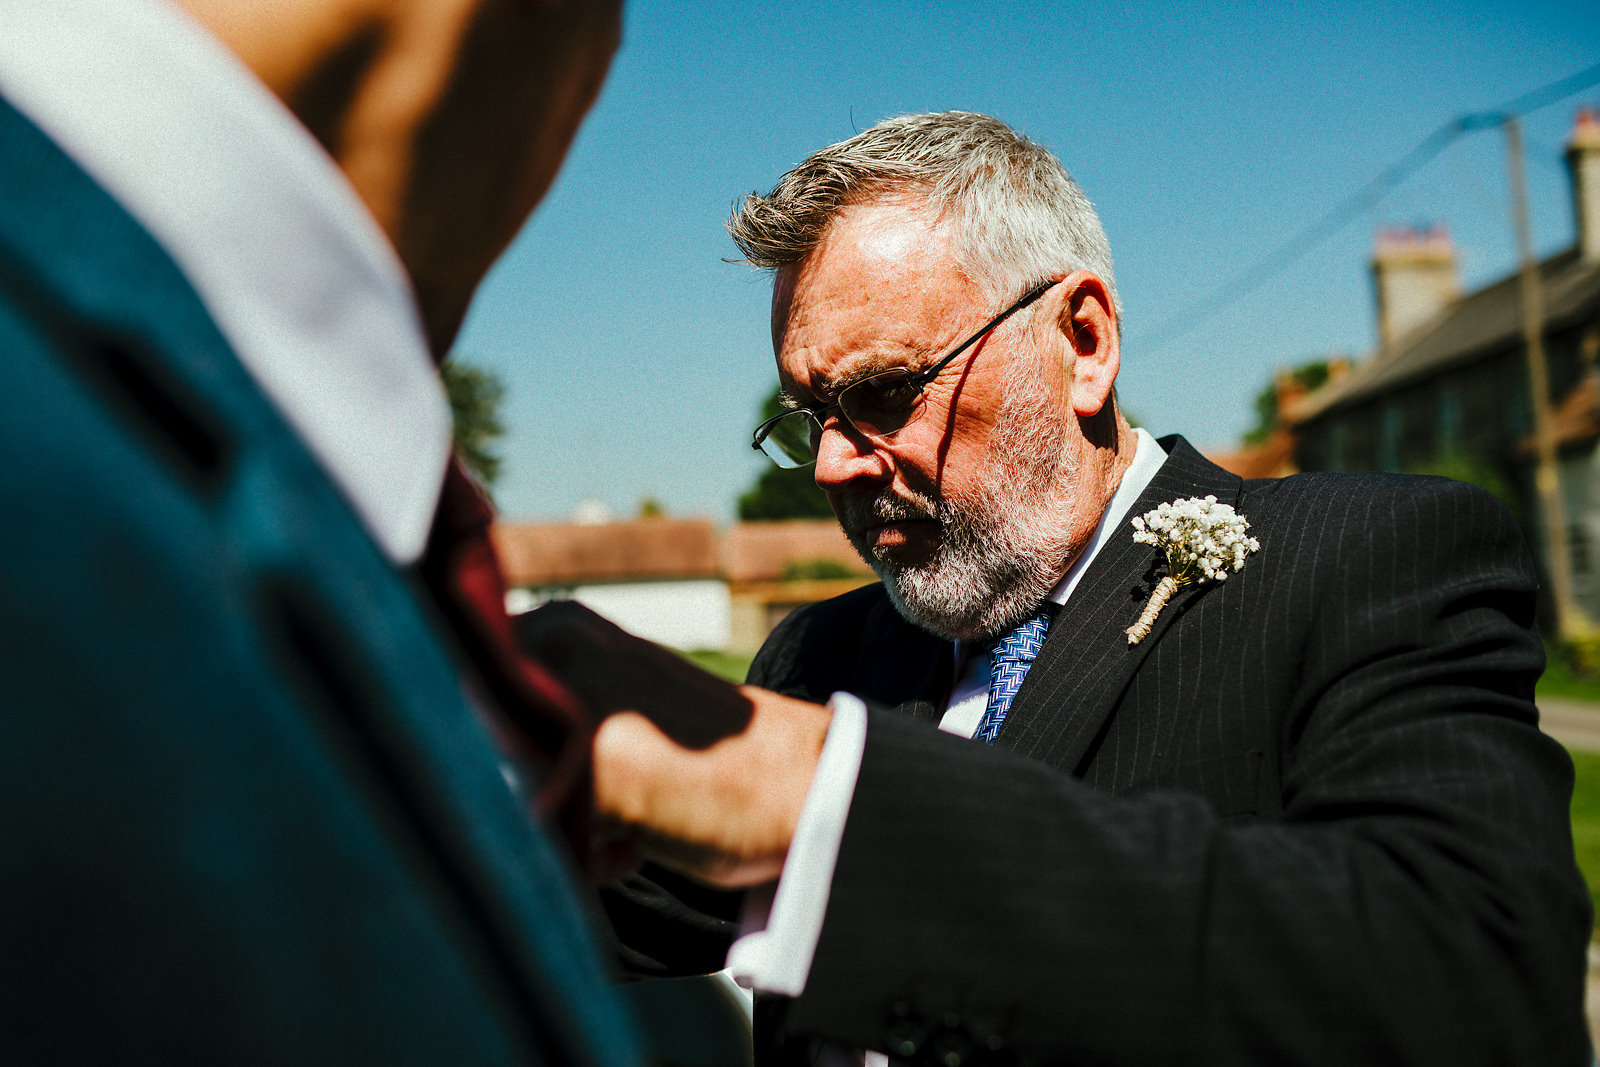 Father of the groom helping with buttonhole